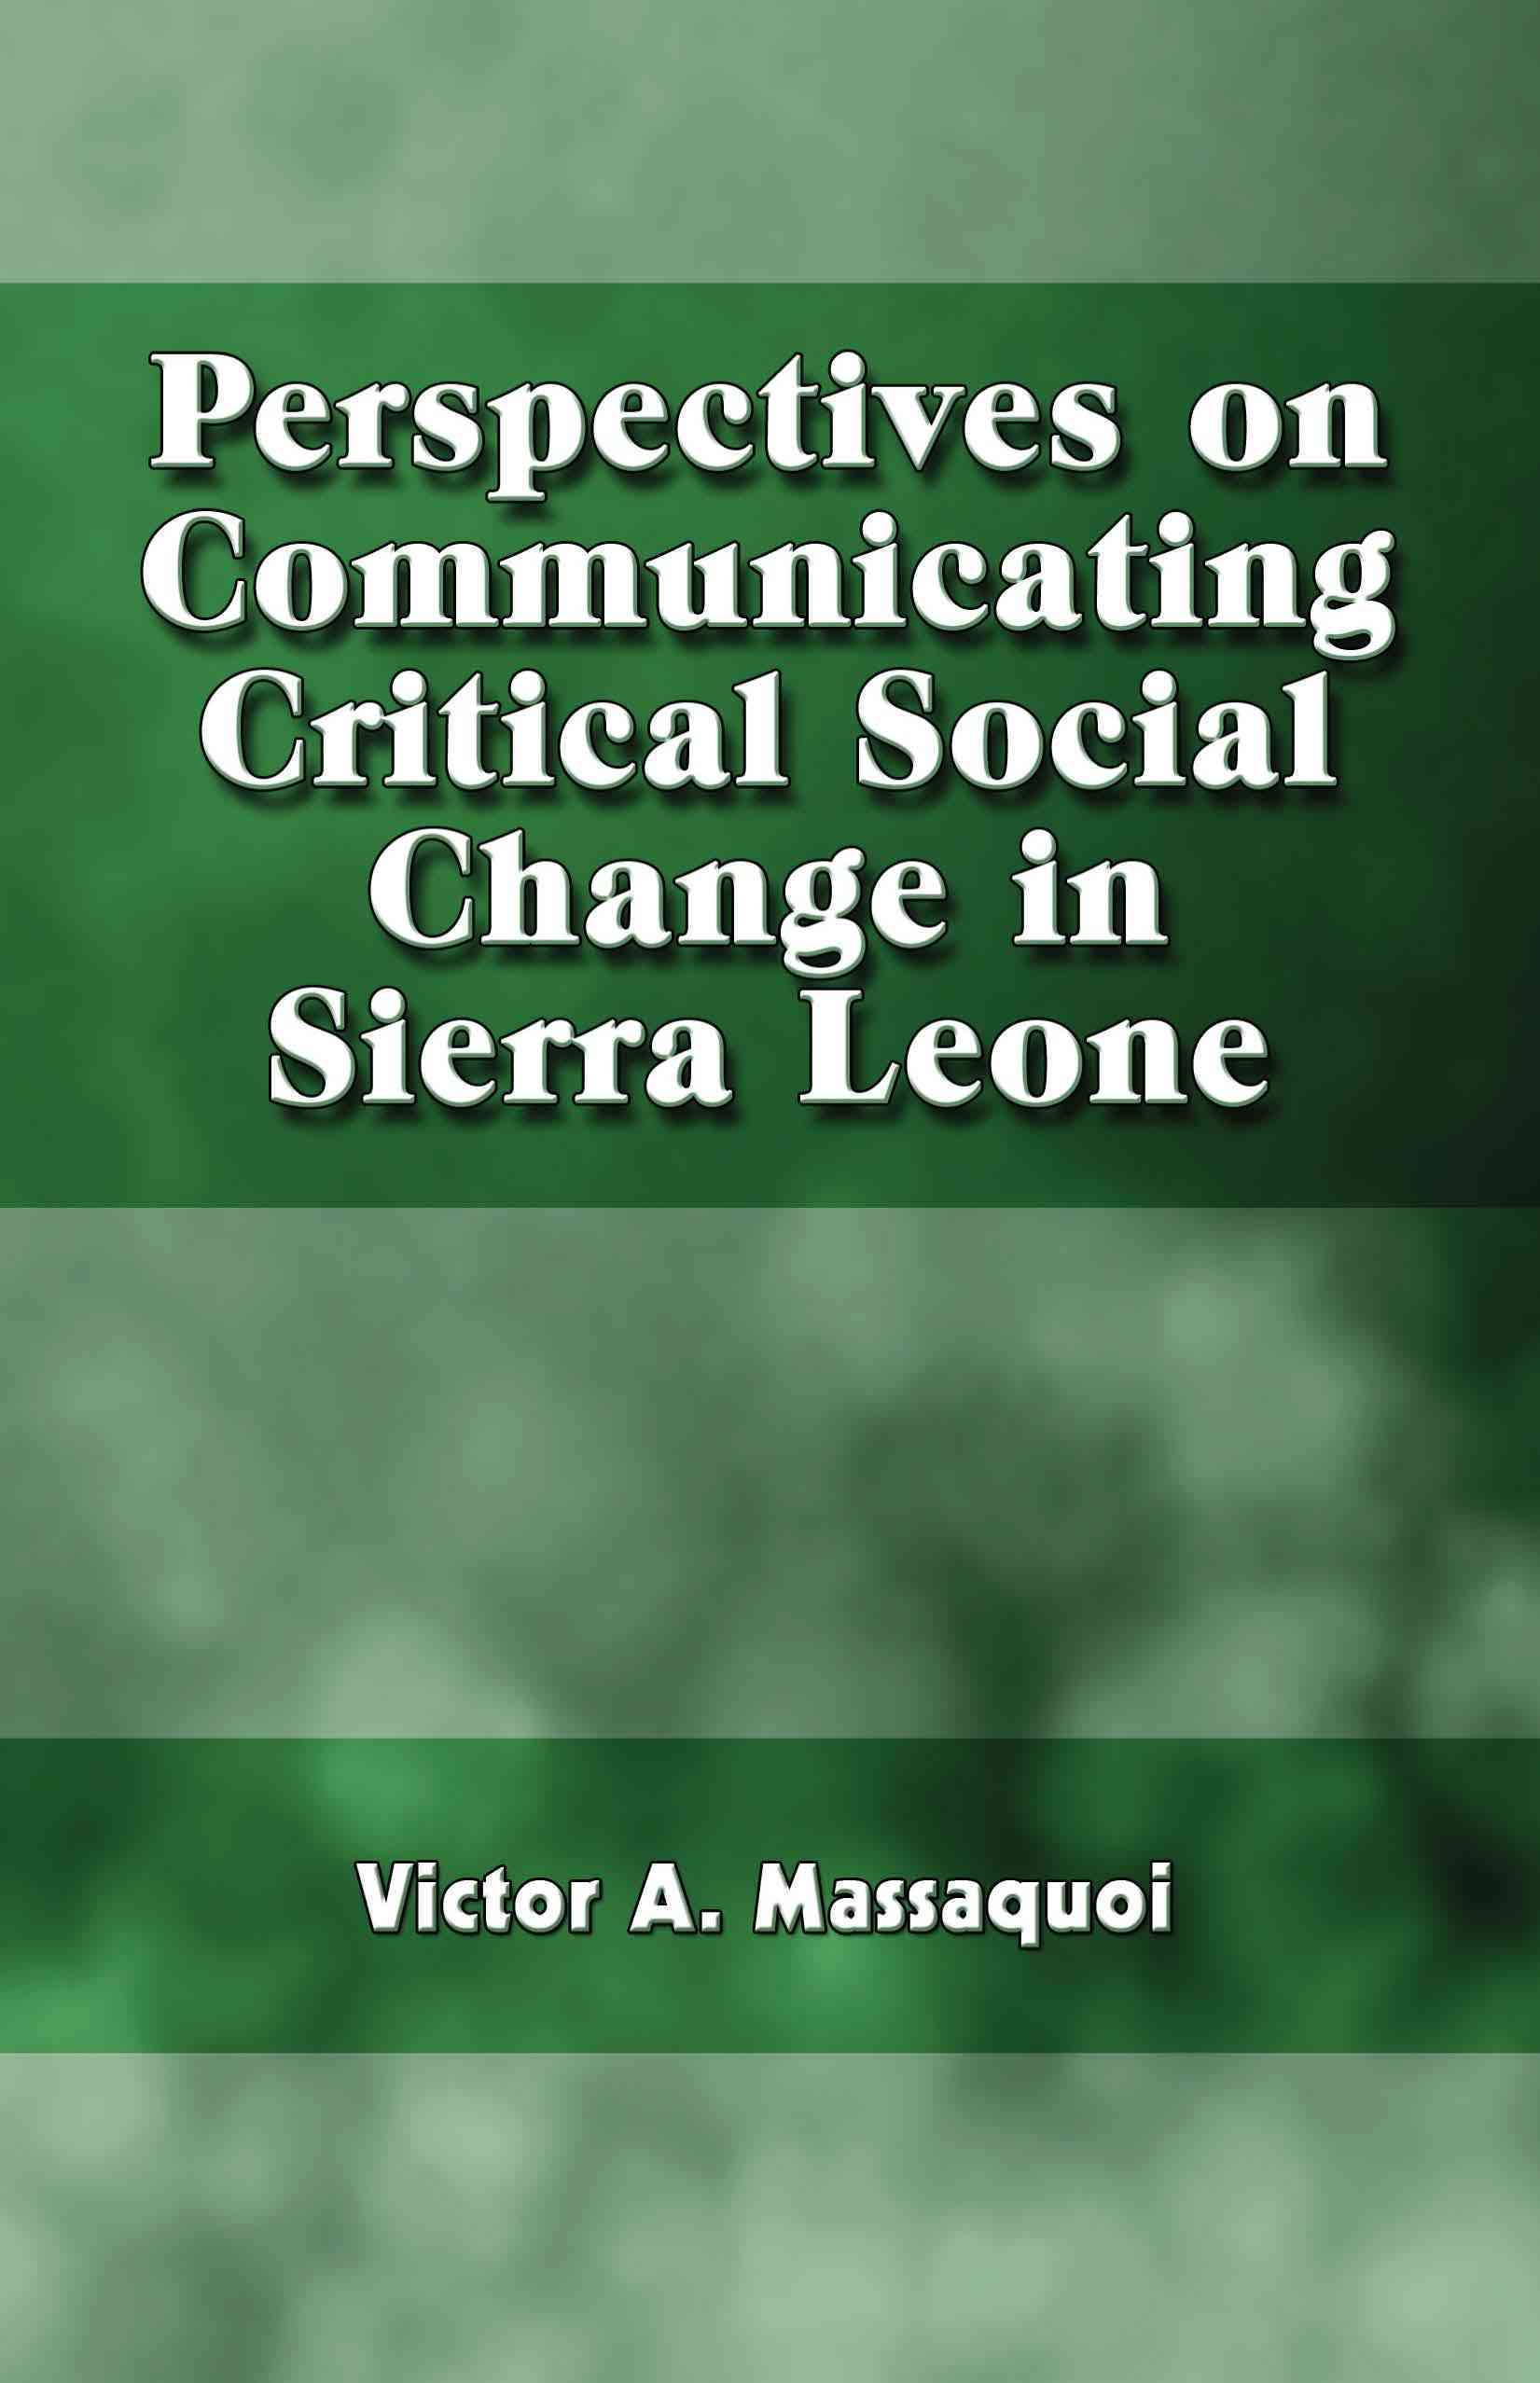 changes in social classes in sierra leone Climate change will produce dramatically unequal impacts across regions and social classes  eritrea and sierra leone,  panel on climate change.